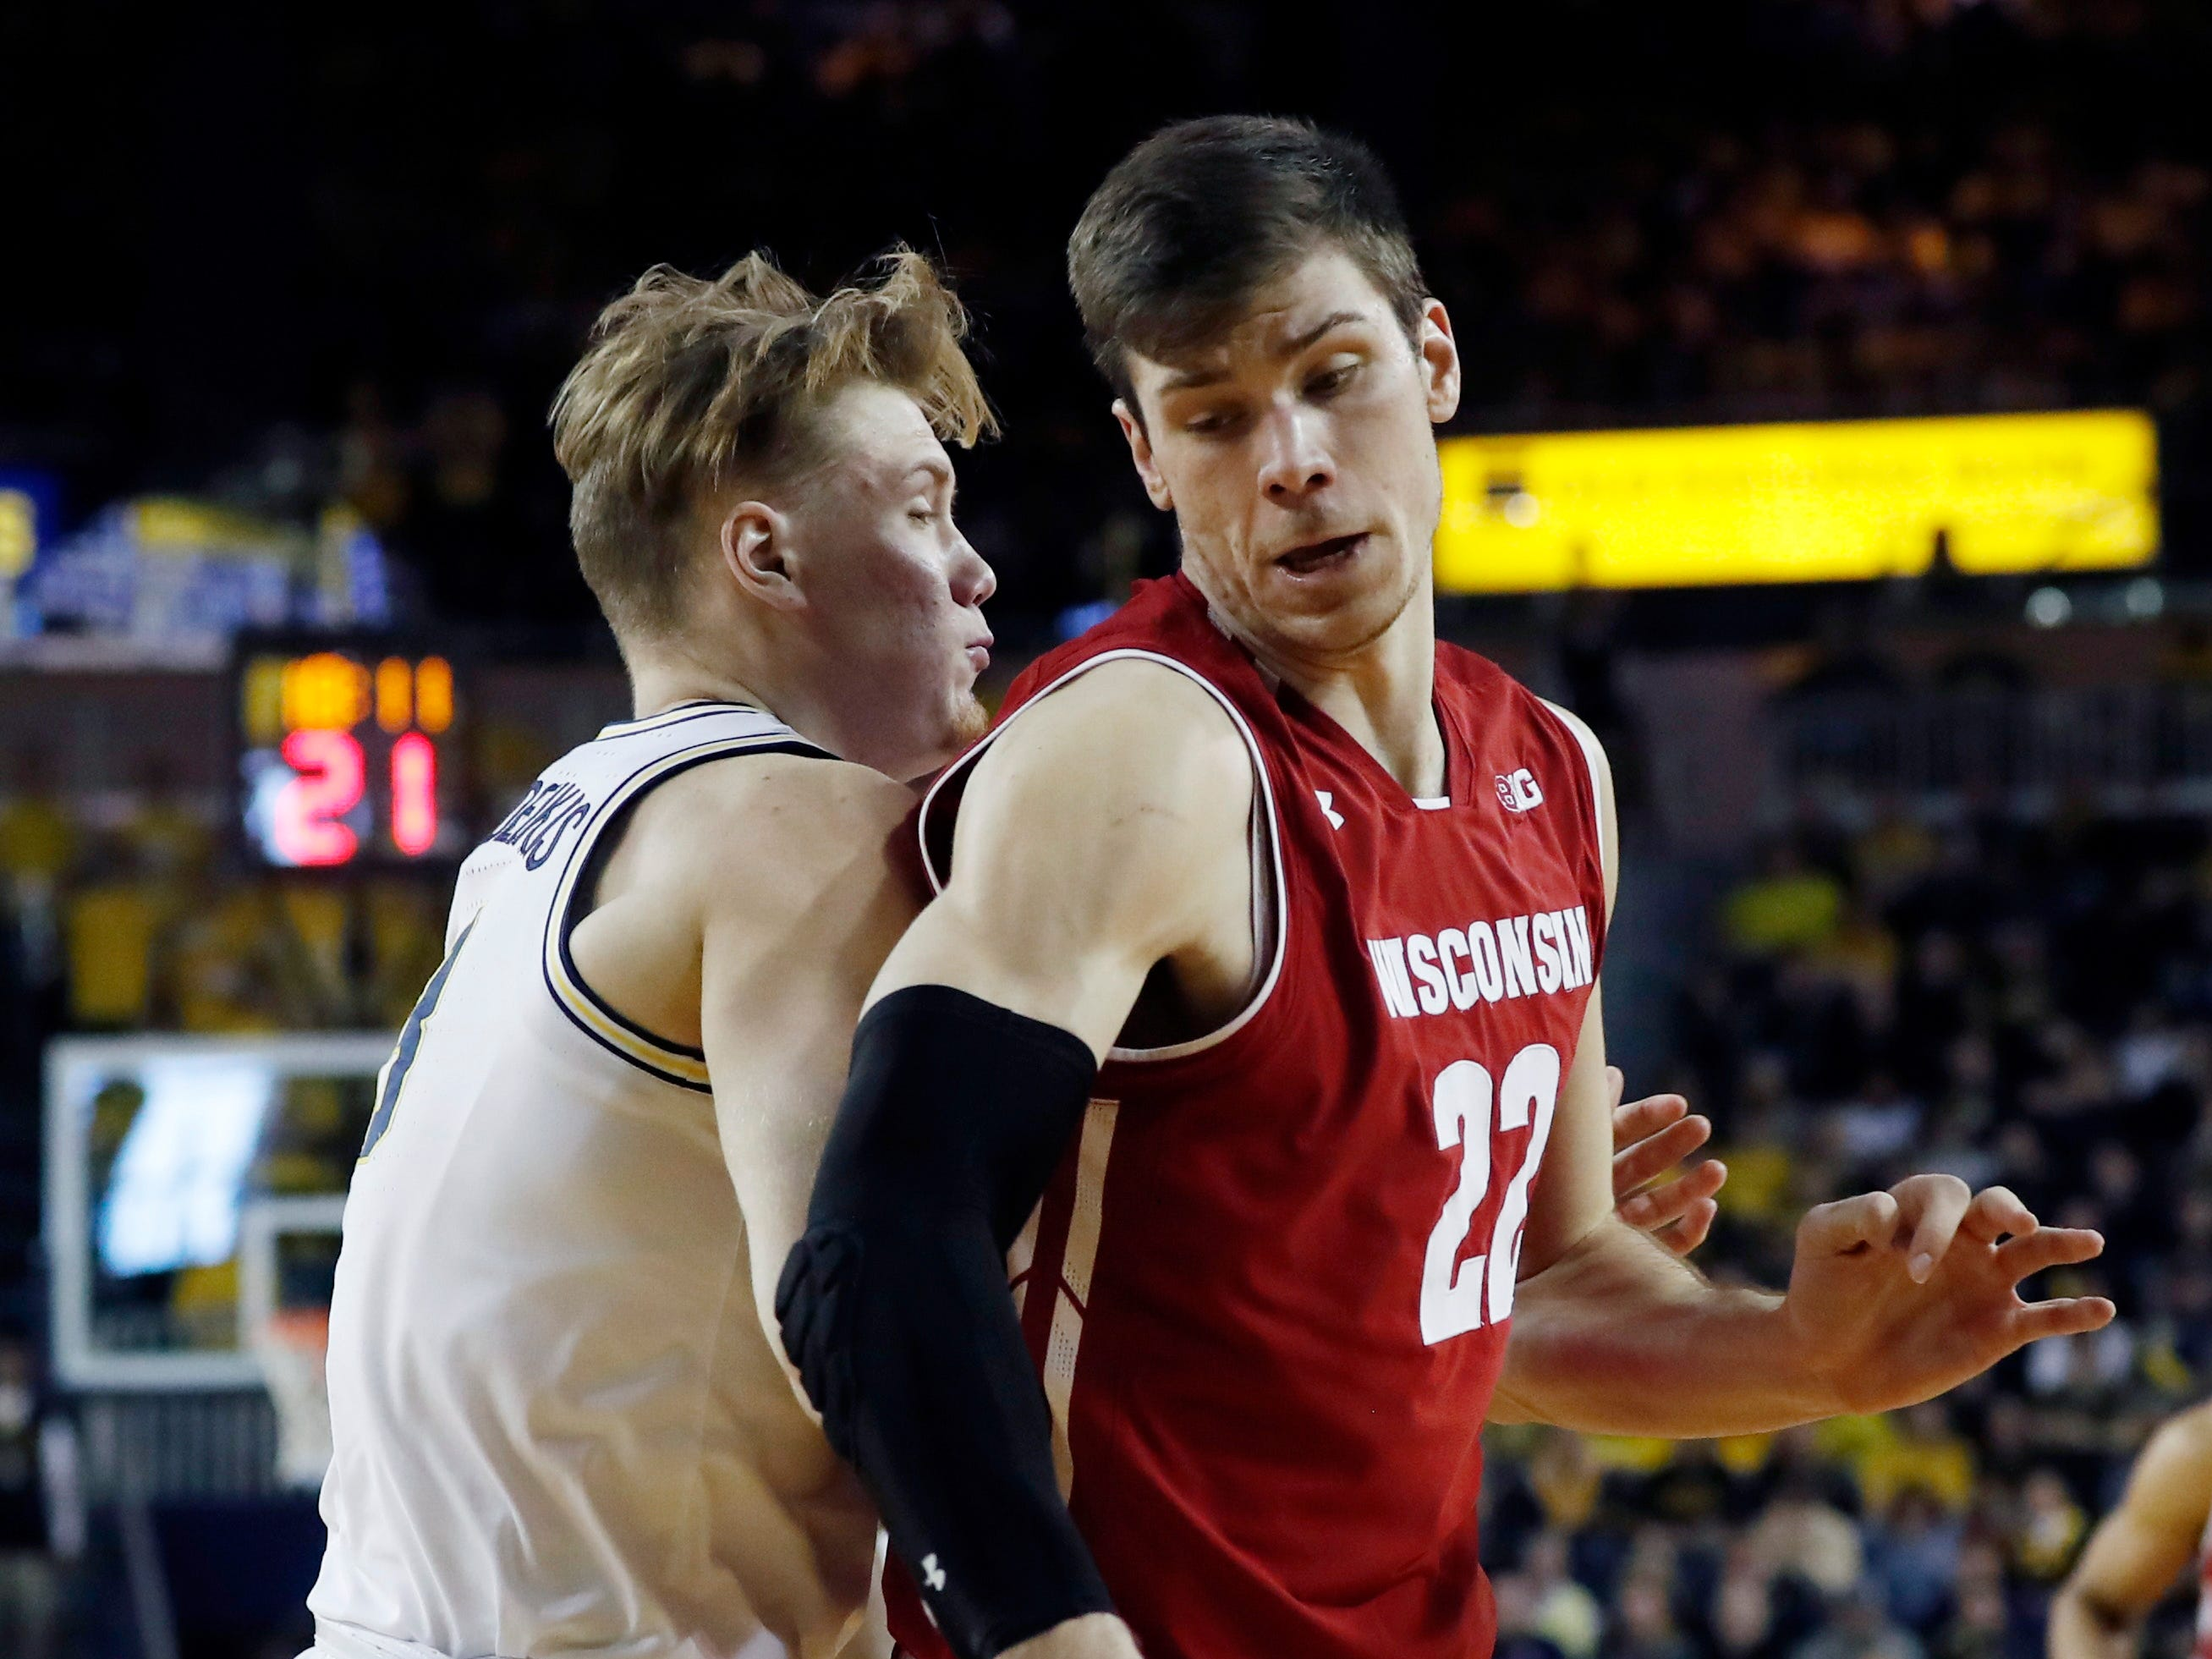 Wisconsin forward Ethan Happ dribbles around Michigan forward Ignas Brazdeikis on Saturday. Happ finished with 18 points and 11 rebounds.